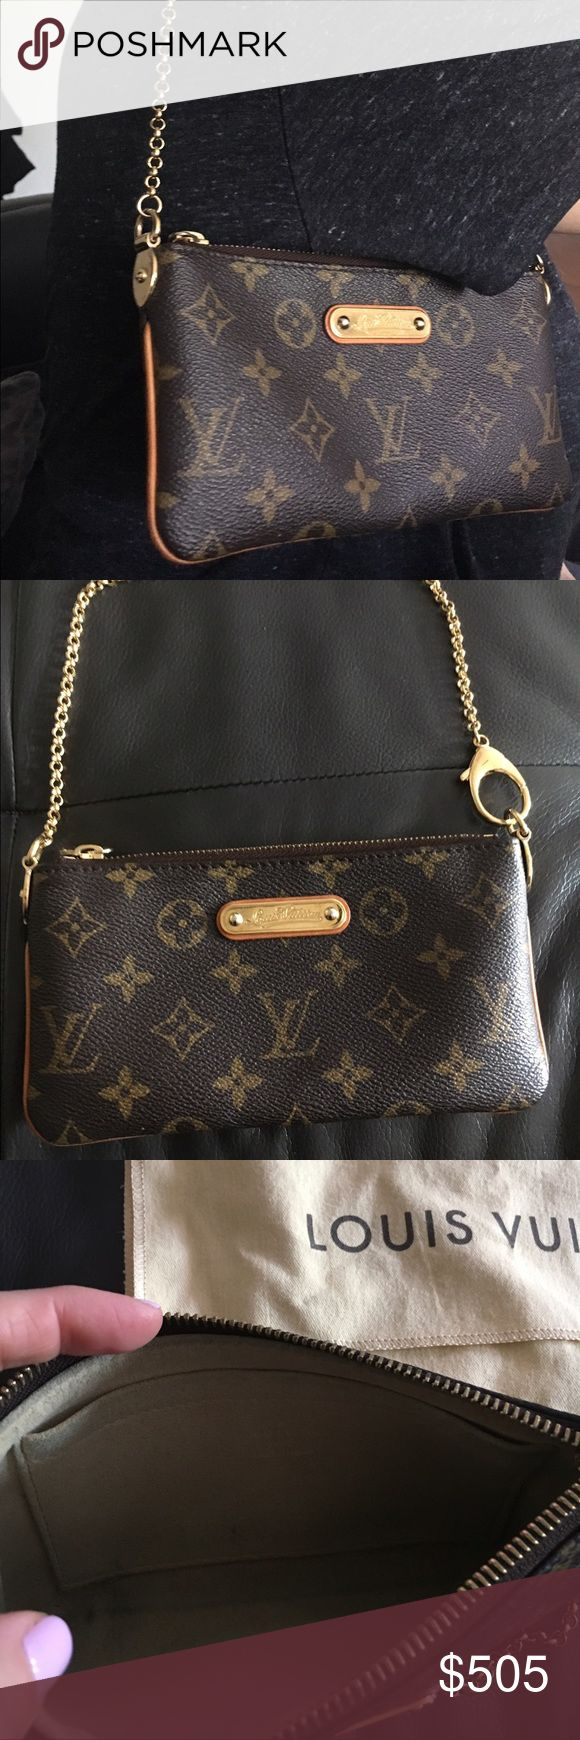 Look - Vuitton louis embossed arm candy video